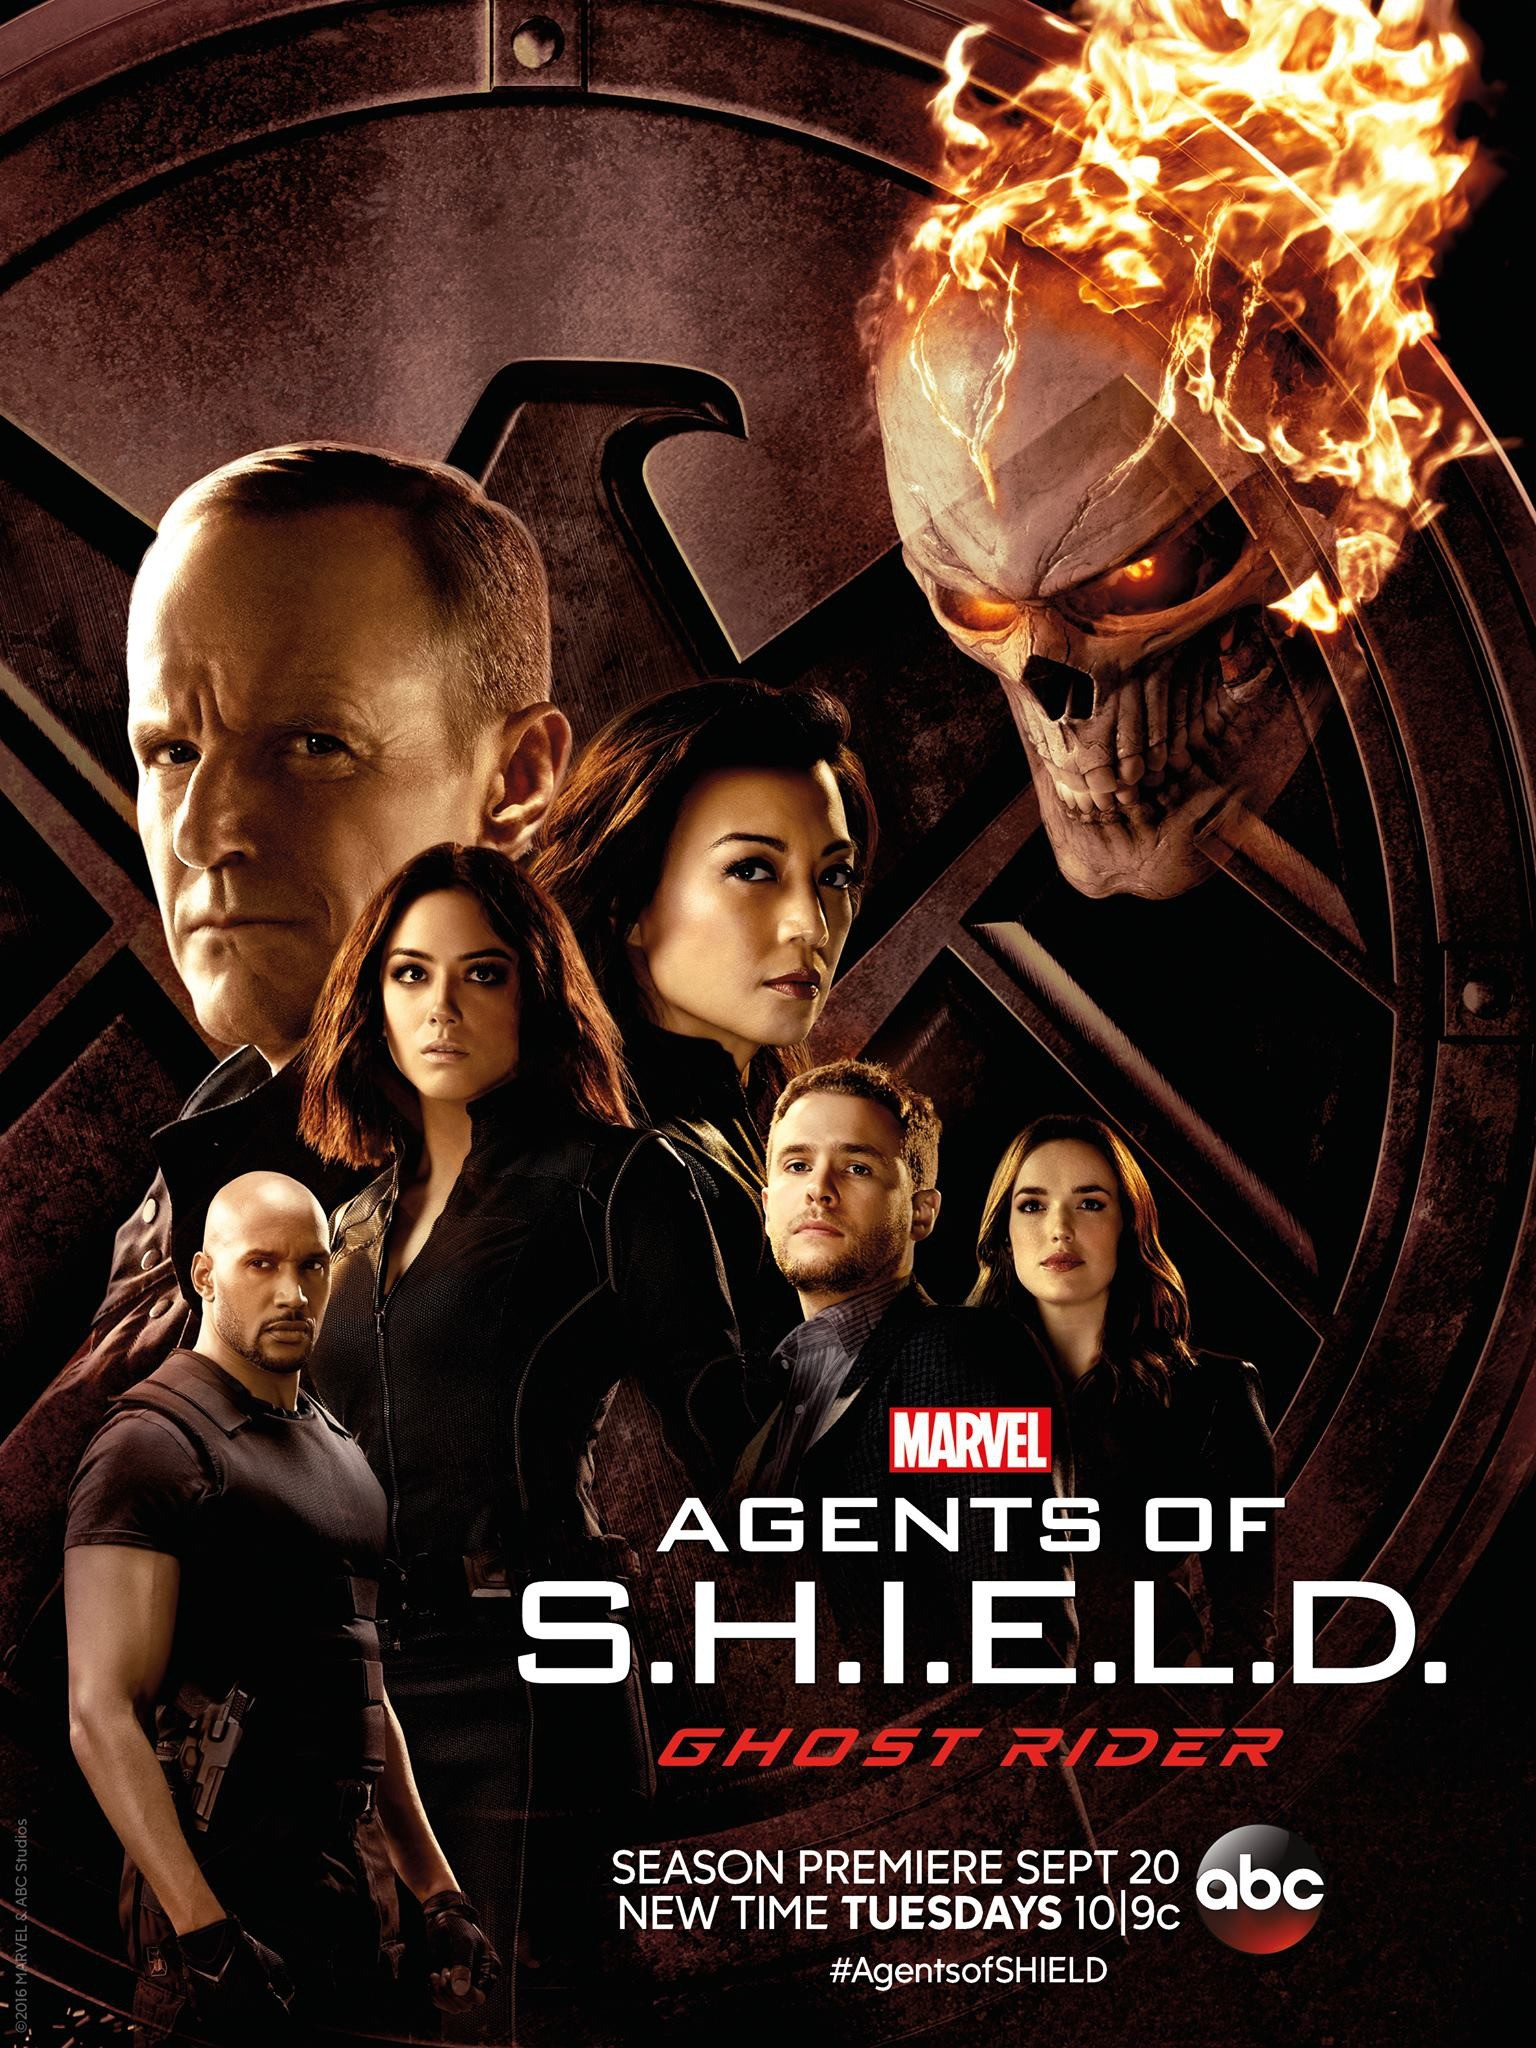 Agents of S.H.I.E.L.D. (Season 4) 神盾局特工 第四季